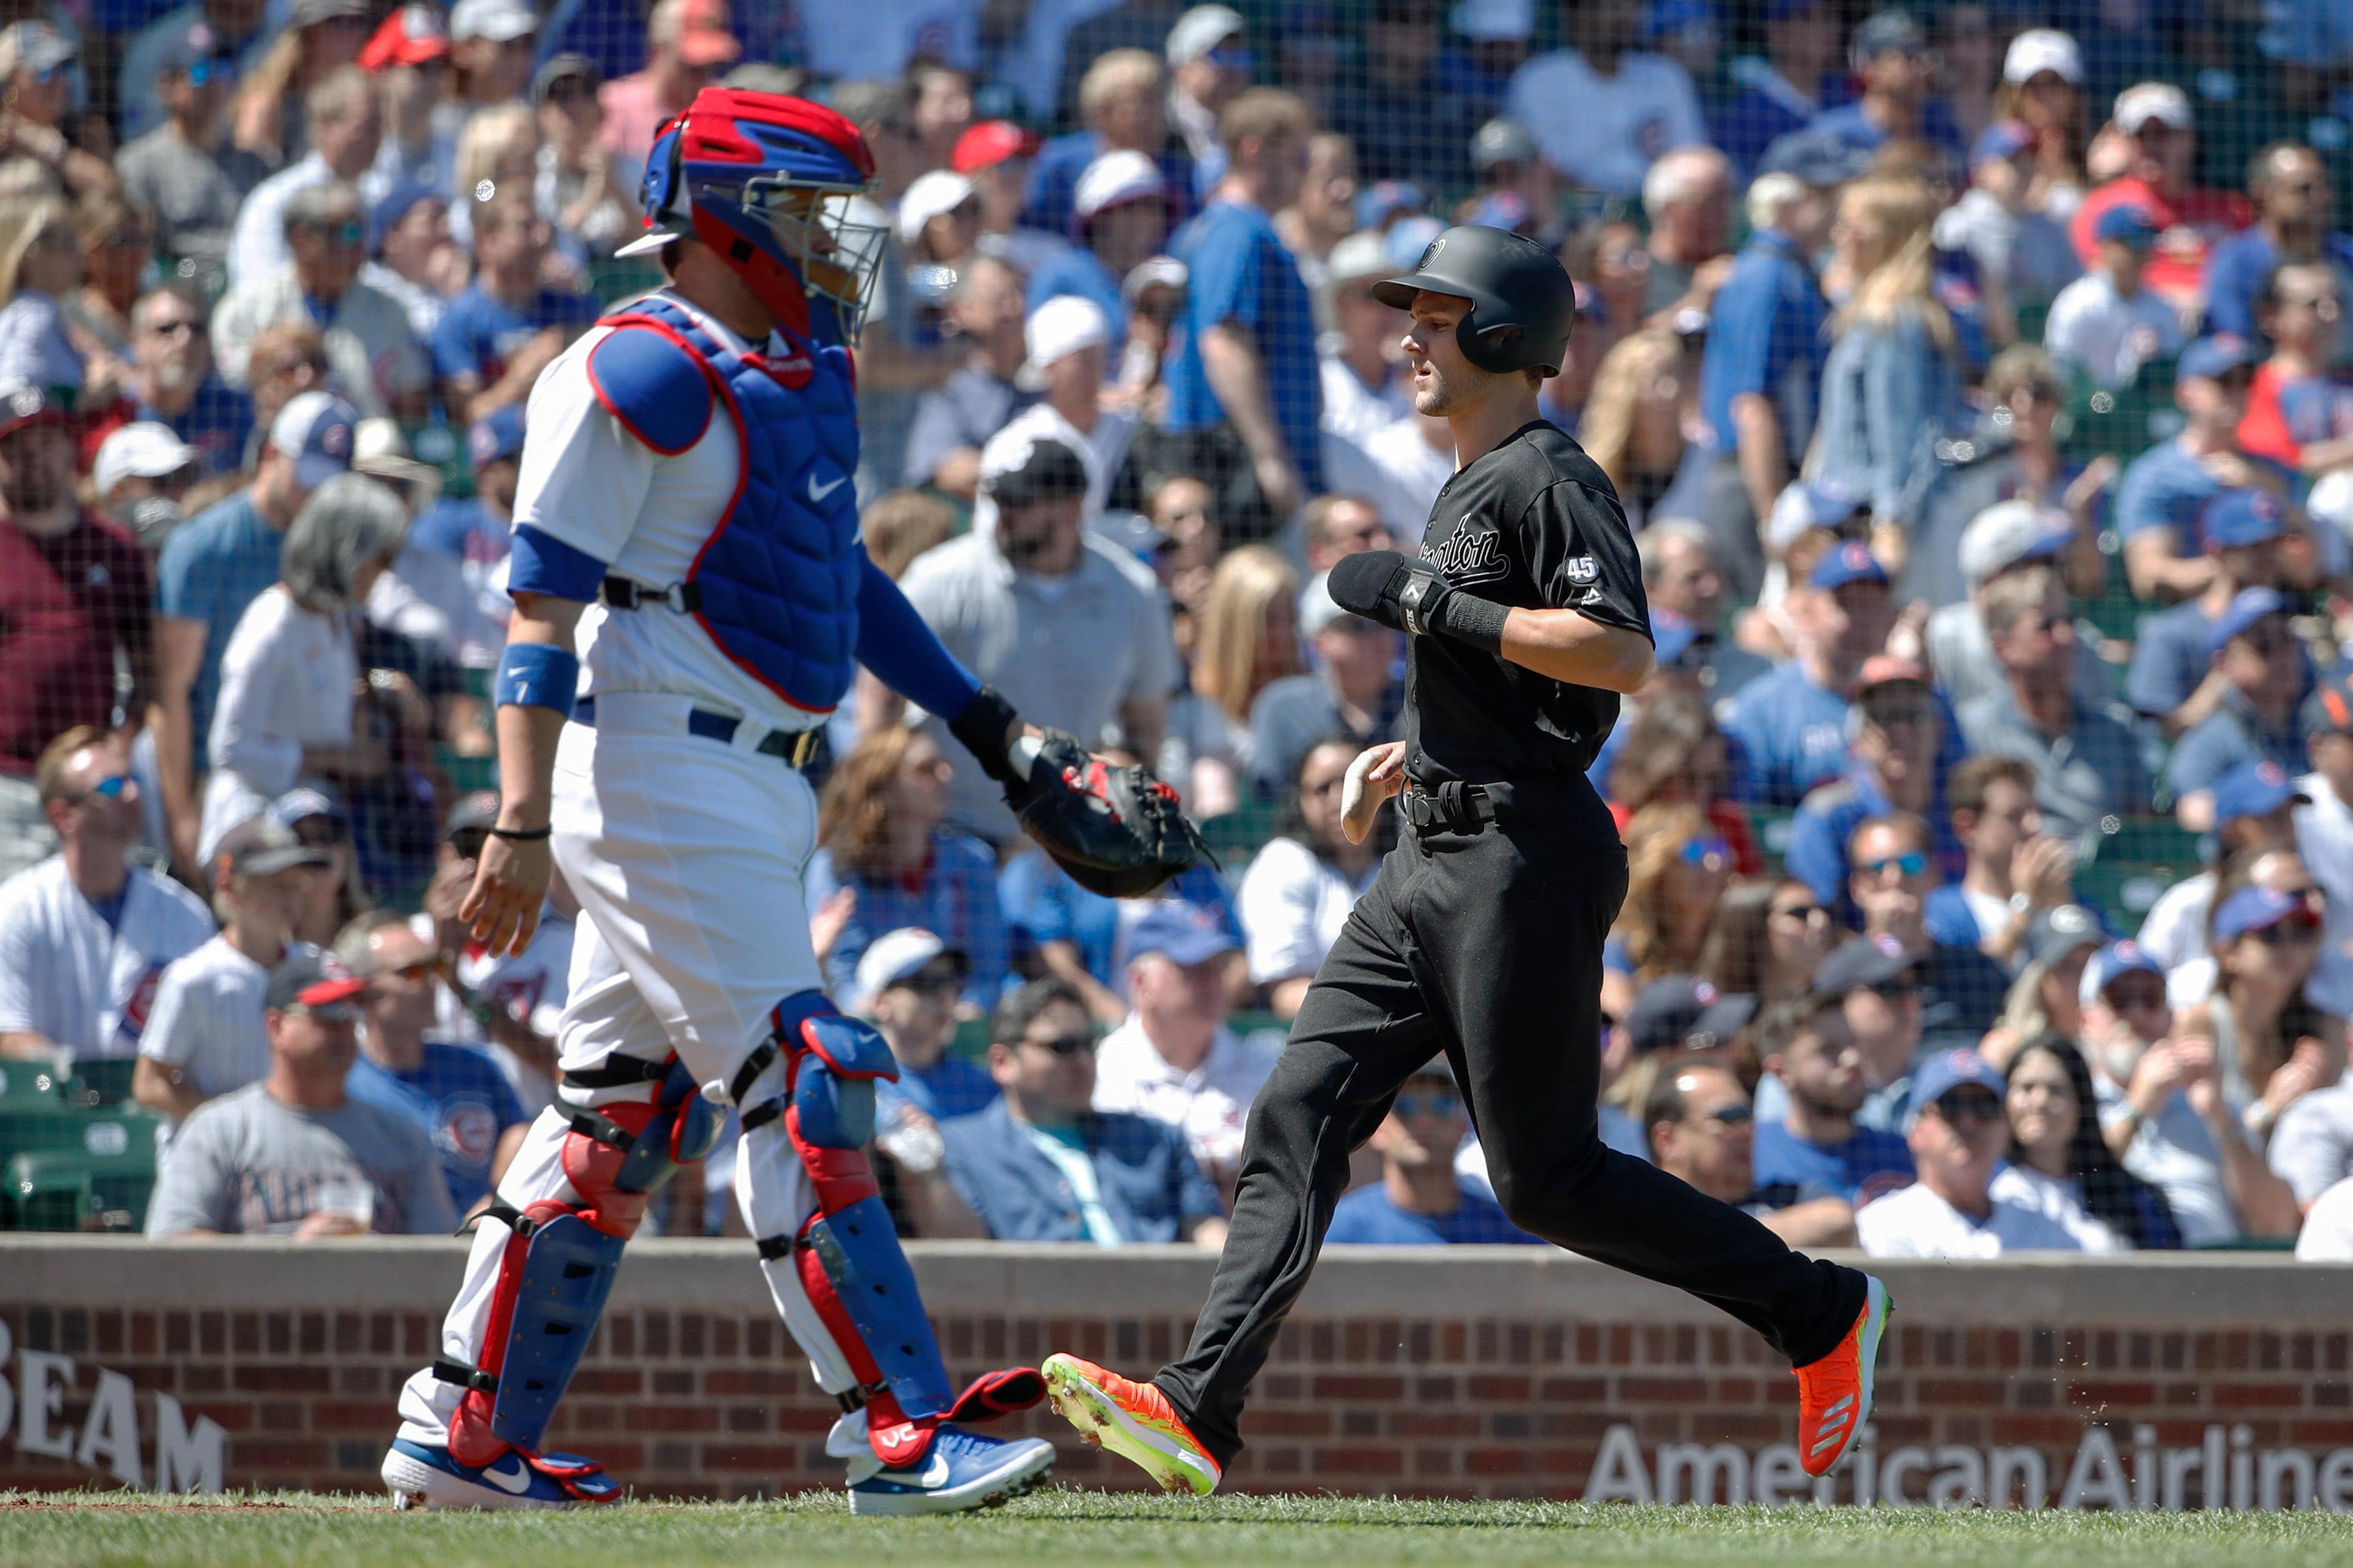 Turner, Nationals beat Cubs 7-2 for 4th straight win